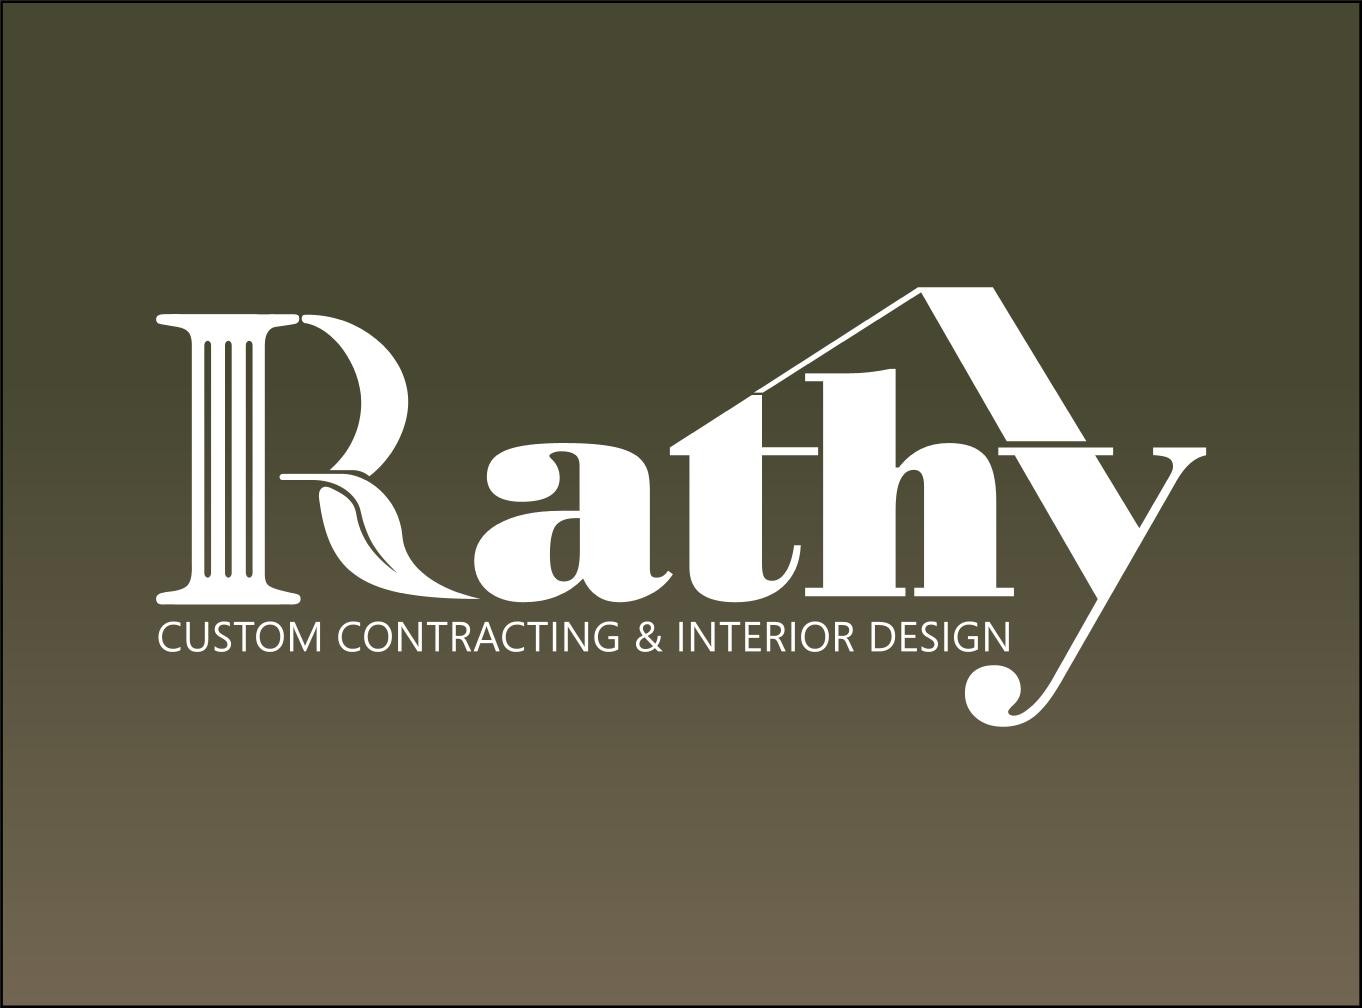 Logo Design by aresforever78 - Entry No. 24 in the Logo Design Contest Logo Design Needed for Exciting New Company Rathy Custom Contracting & Interior Design.